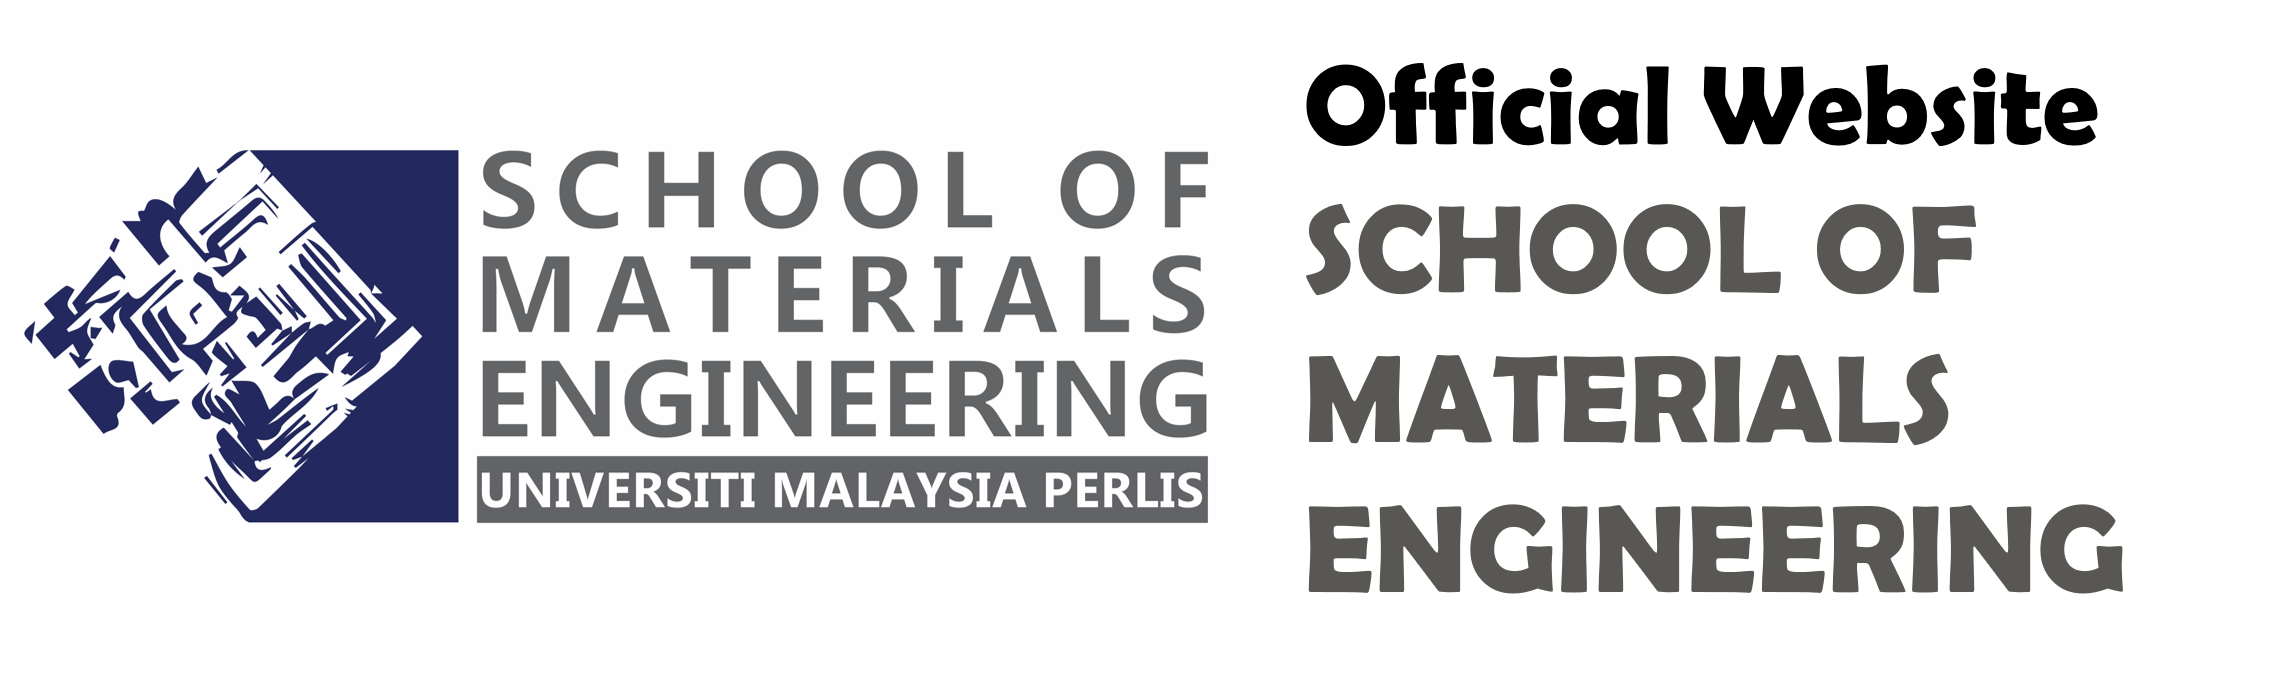 School of Materials Engineering